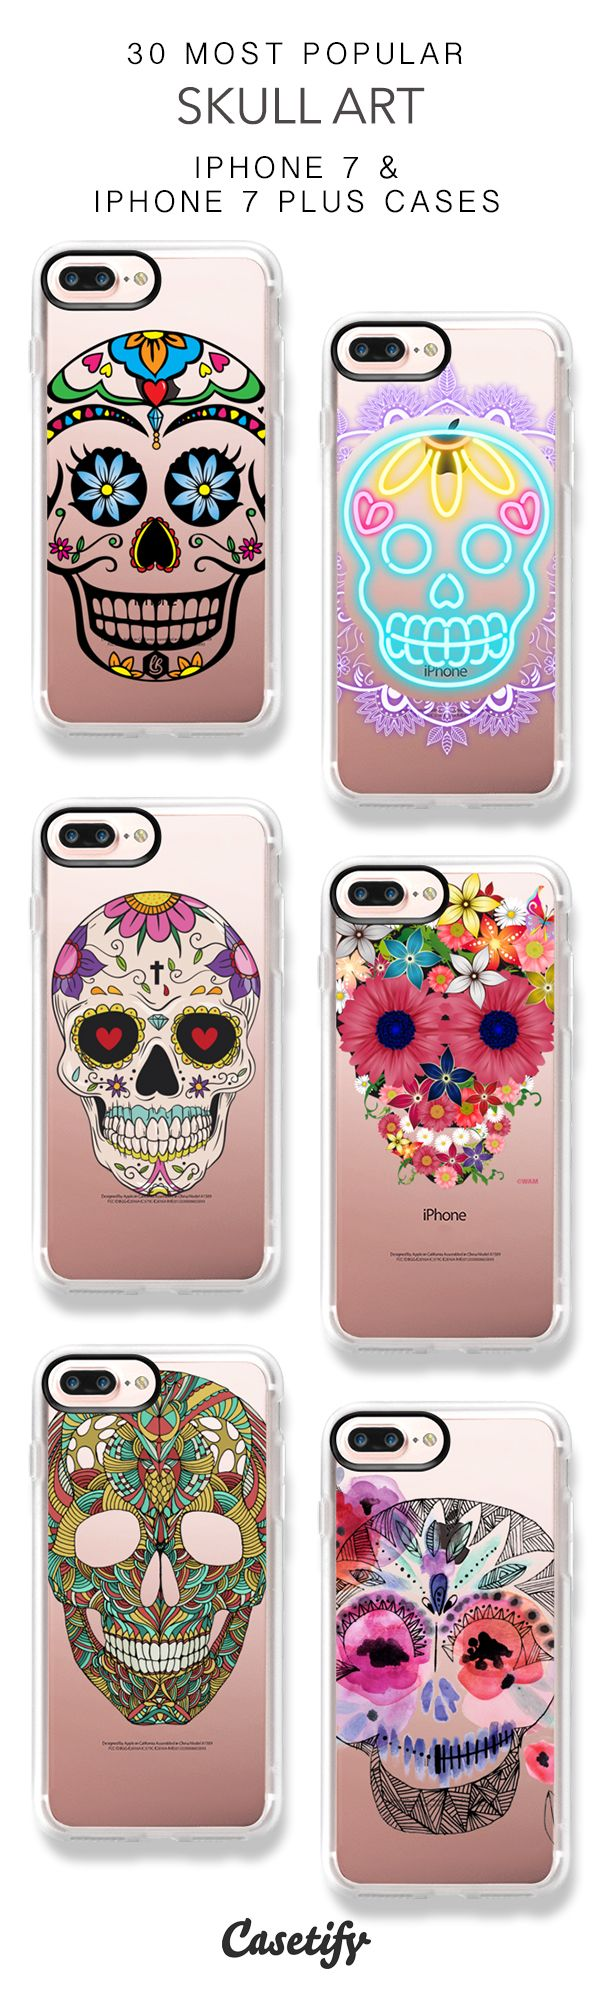 30 Most Popular Skull Art iPhone 7 Cases and iPhone 7 Plus Cases. More Pattern iPhone case here > https://www.casetify.com/collections/top_100_designs#/?vc=8ni6p08MoZ